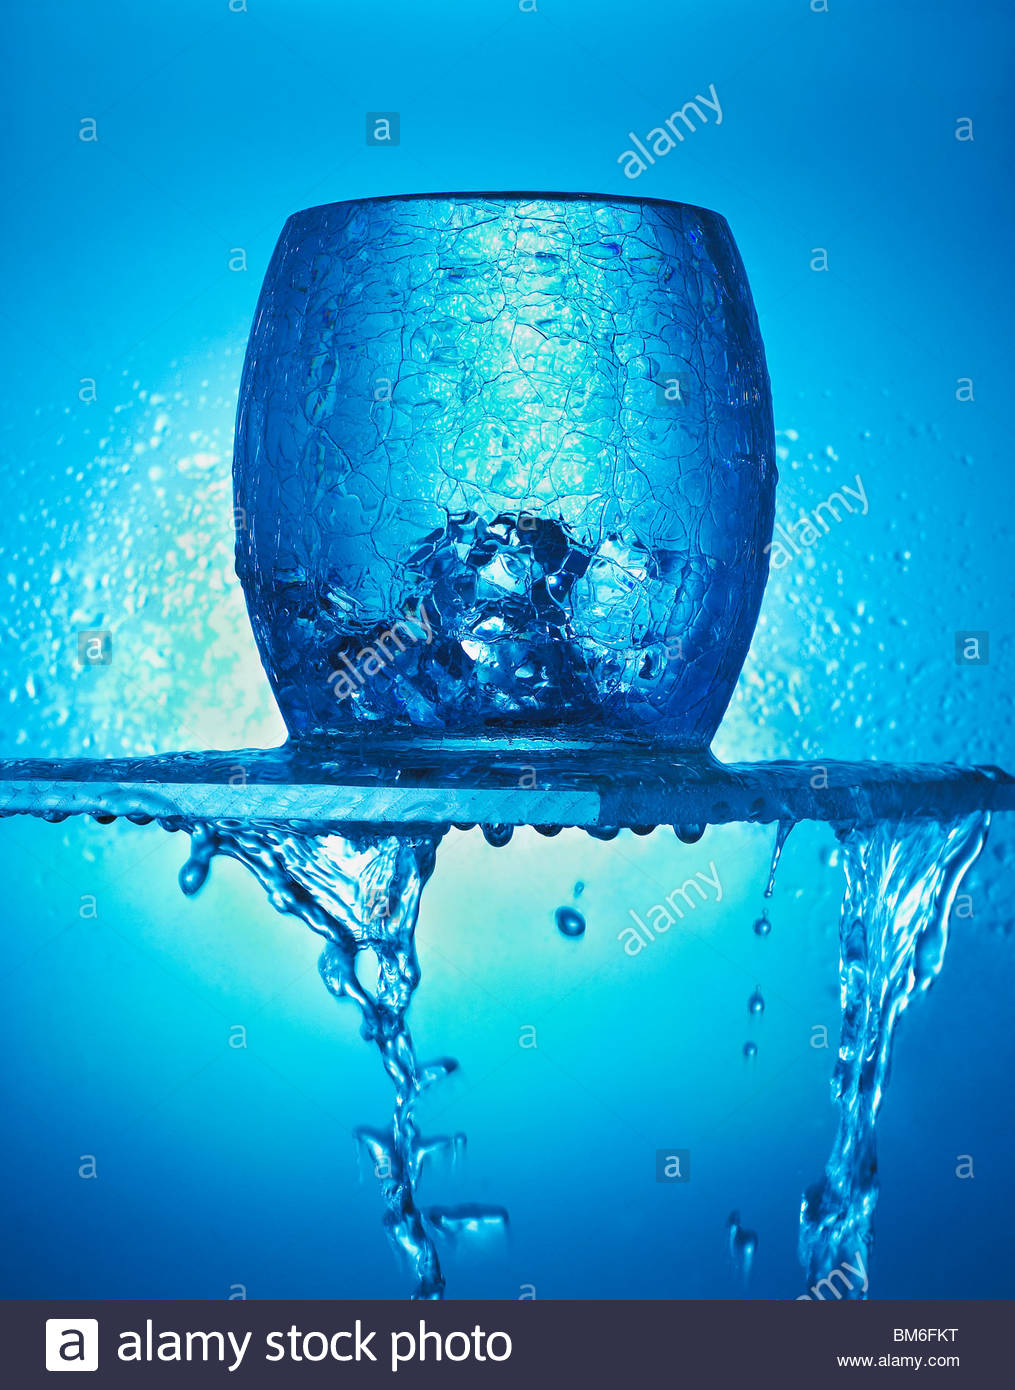 Close up of blue glass, ice cubes and dripping water - Stock Image